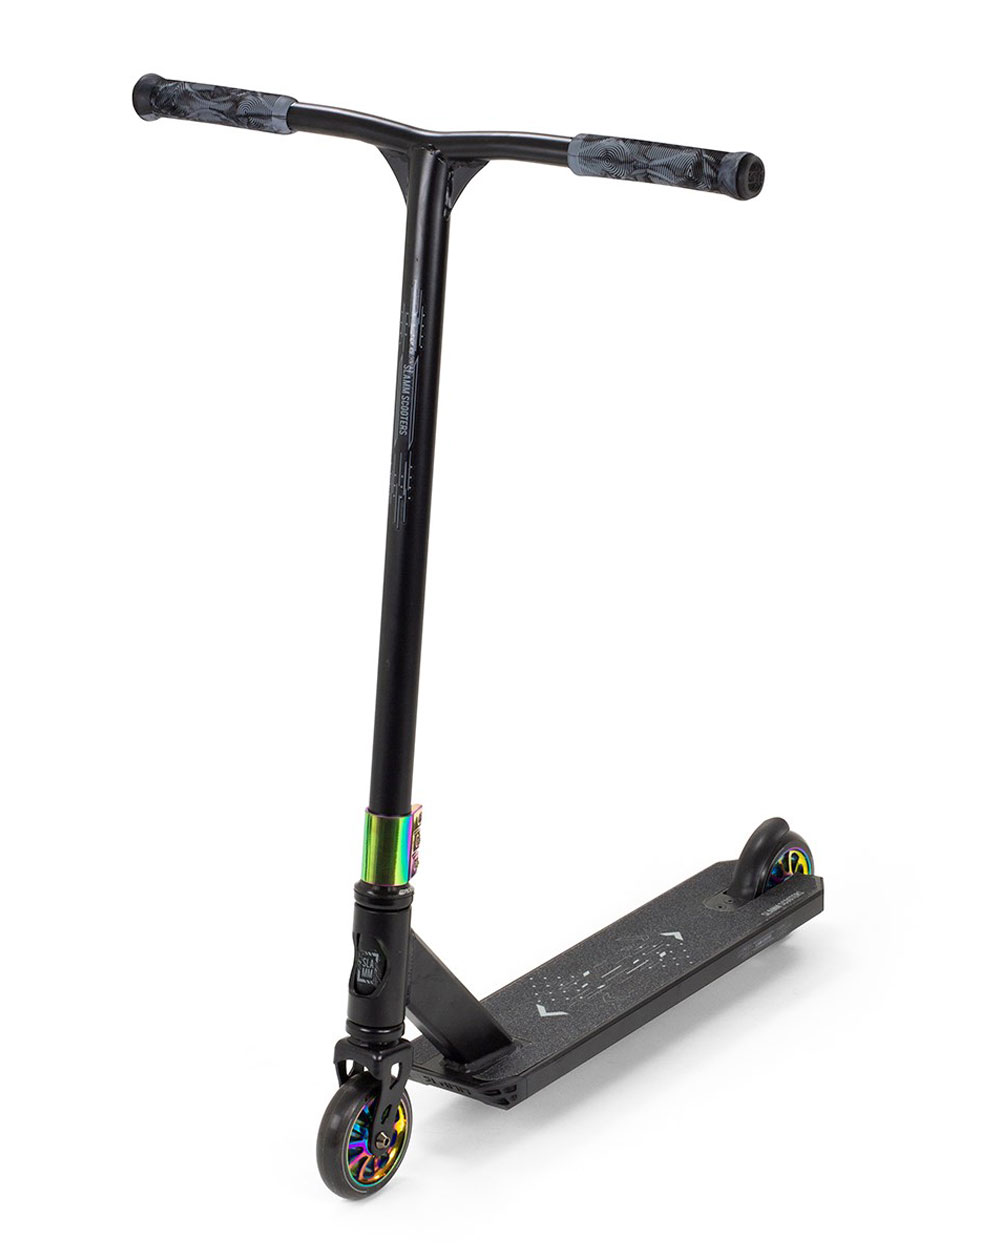 Slamm Scooters Classic V9 Stunt Scooter Black/Neochrome